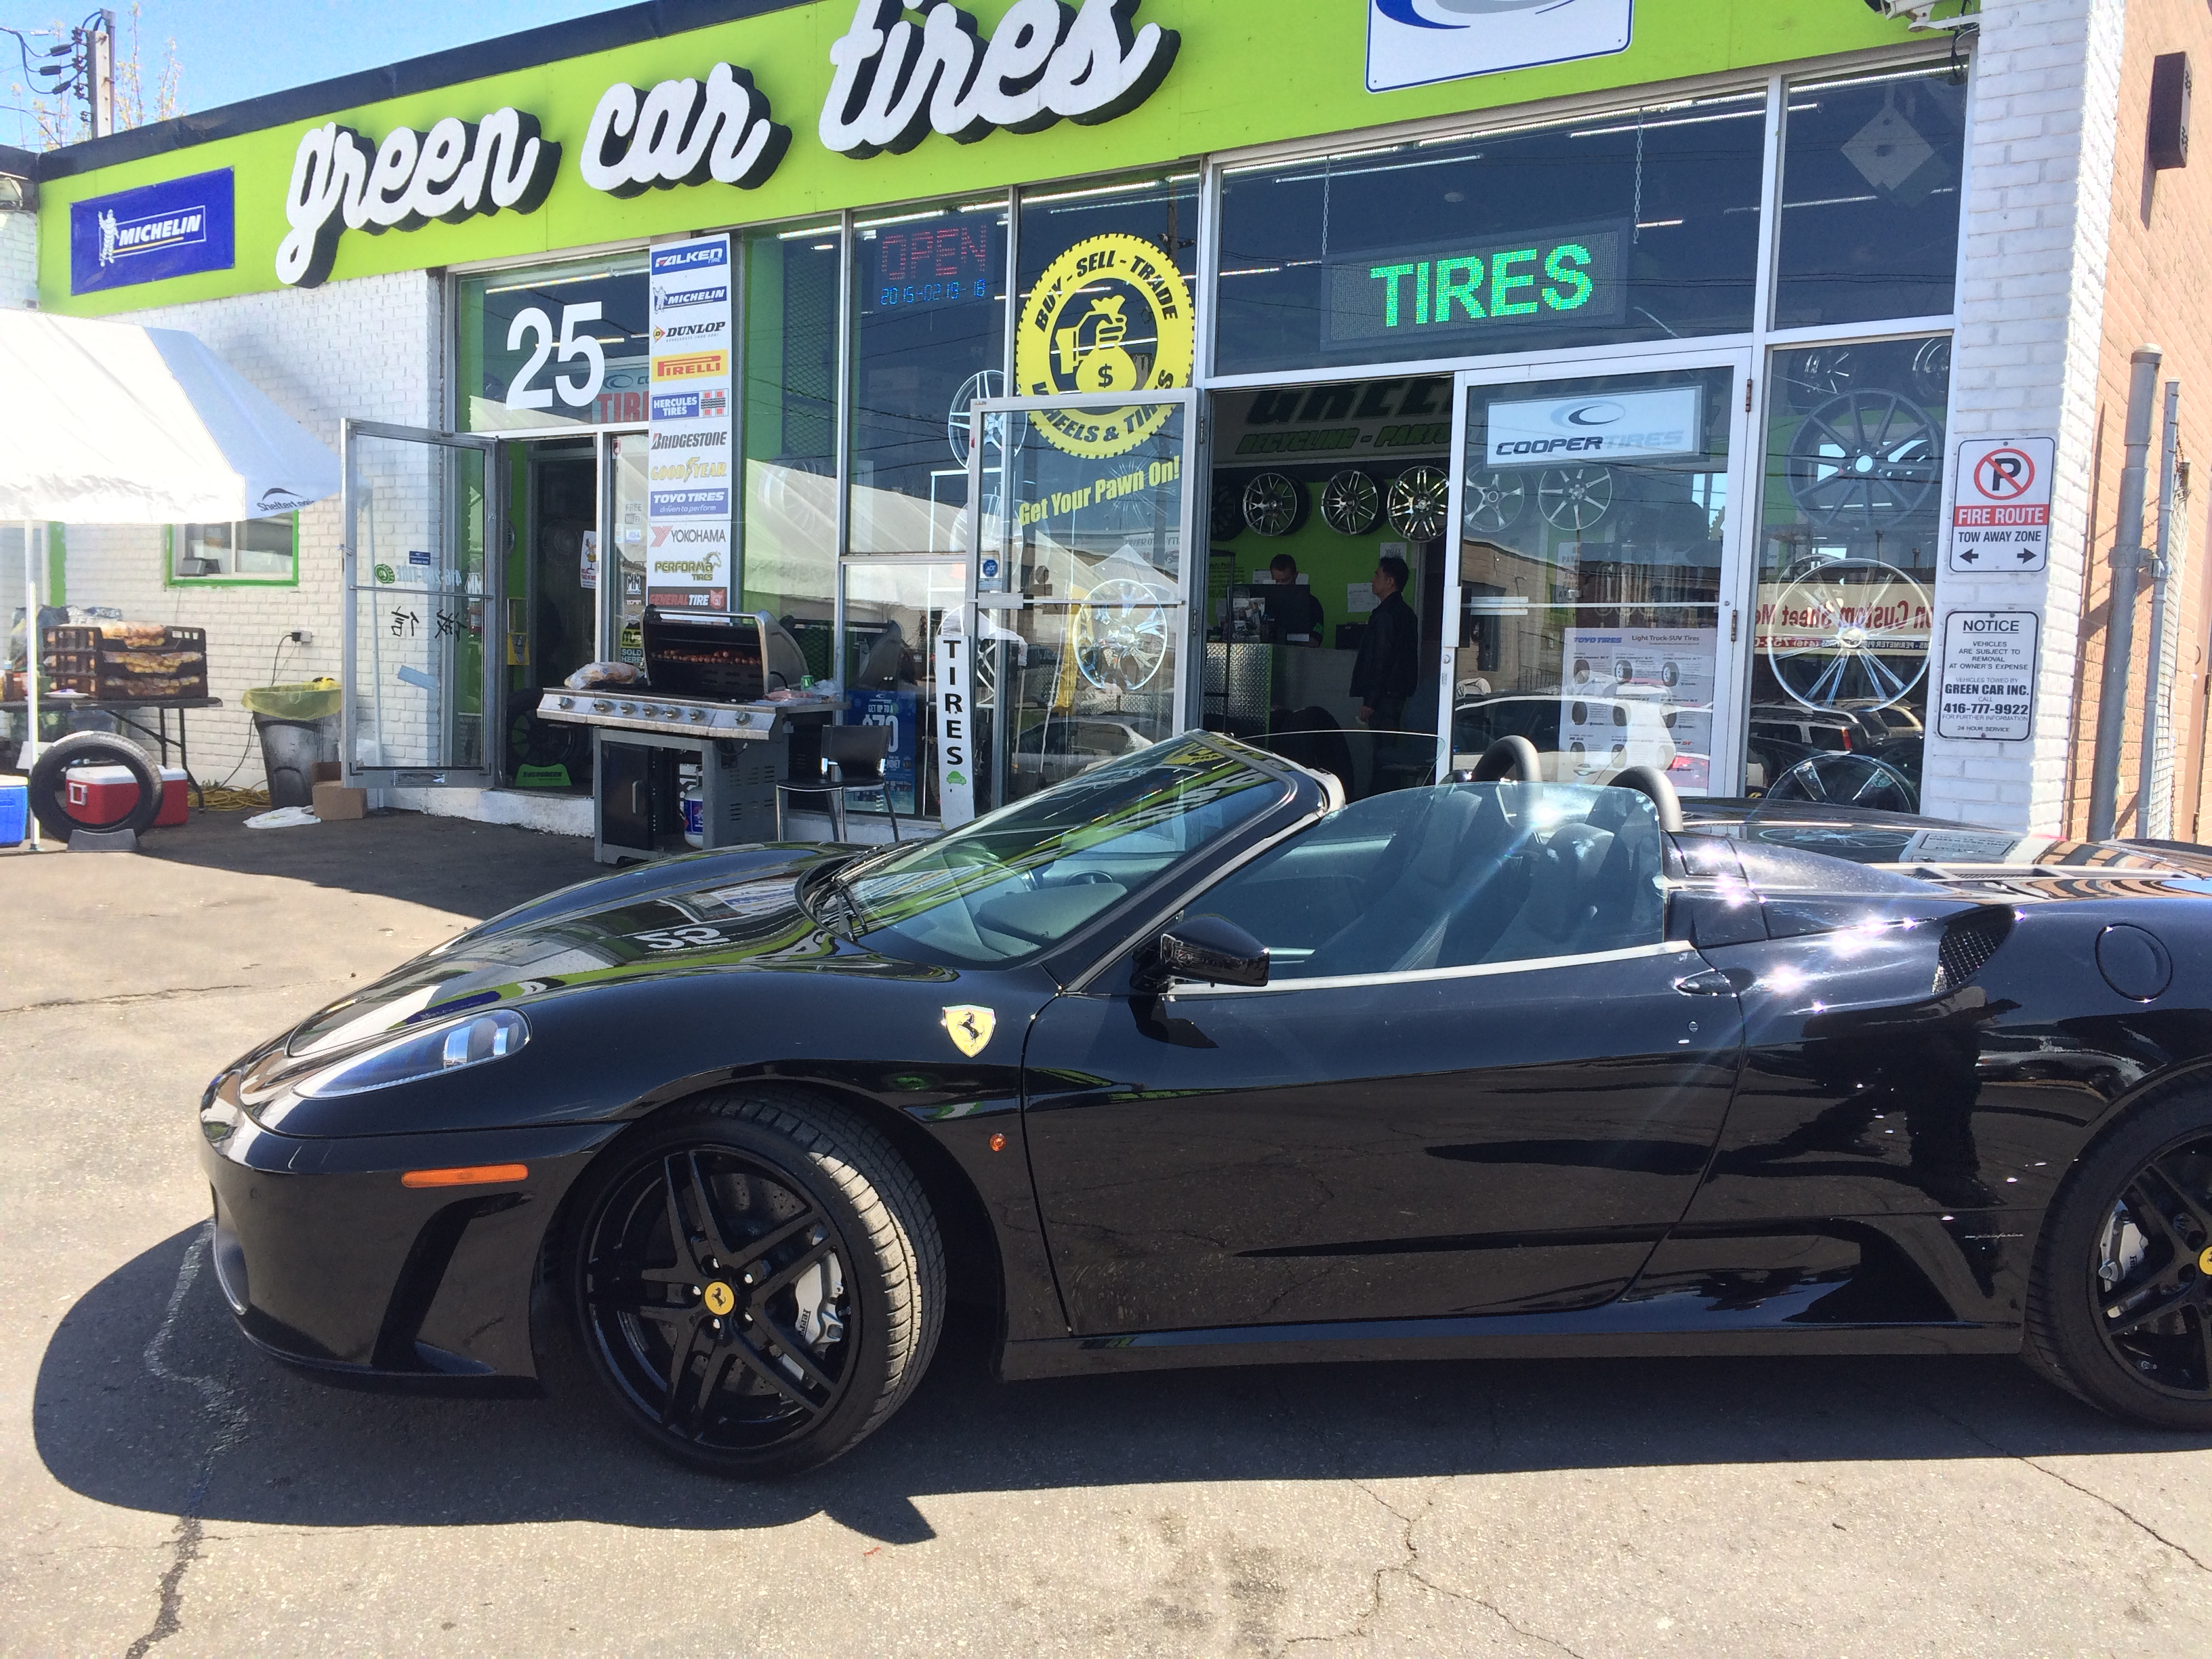 Ferrari at Tire Pawn